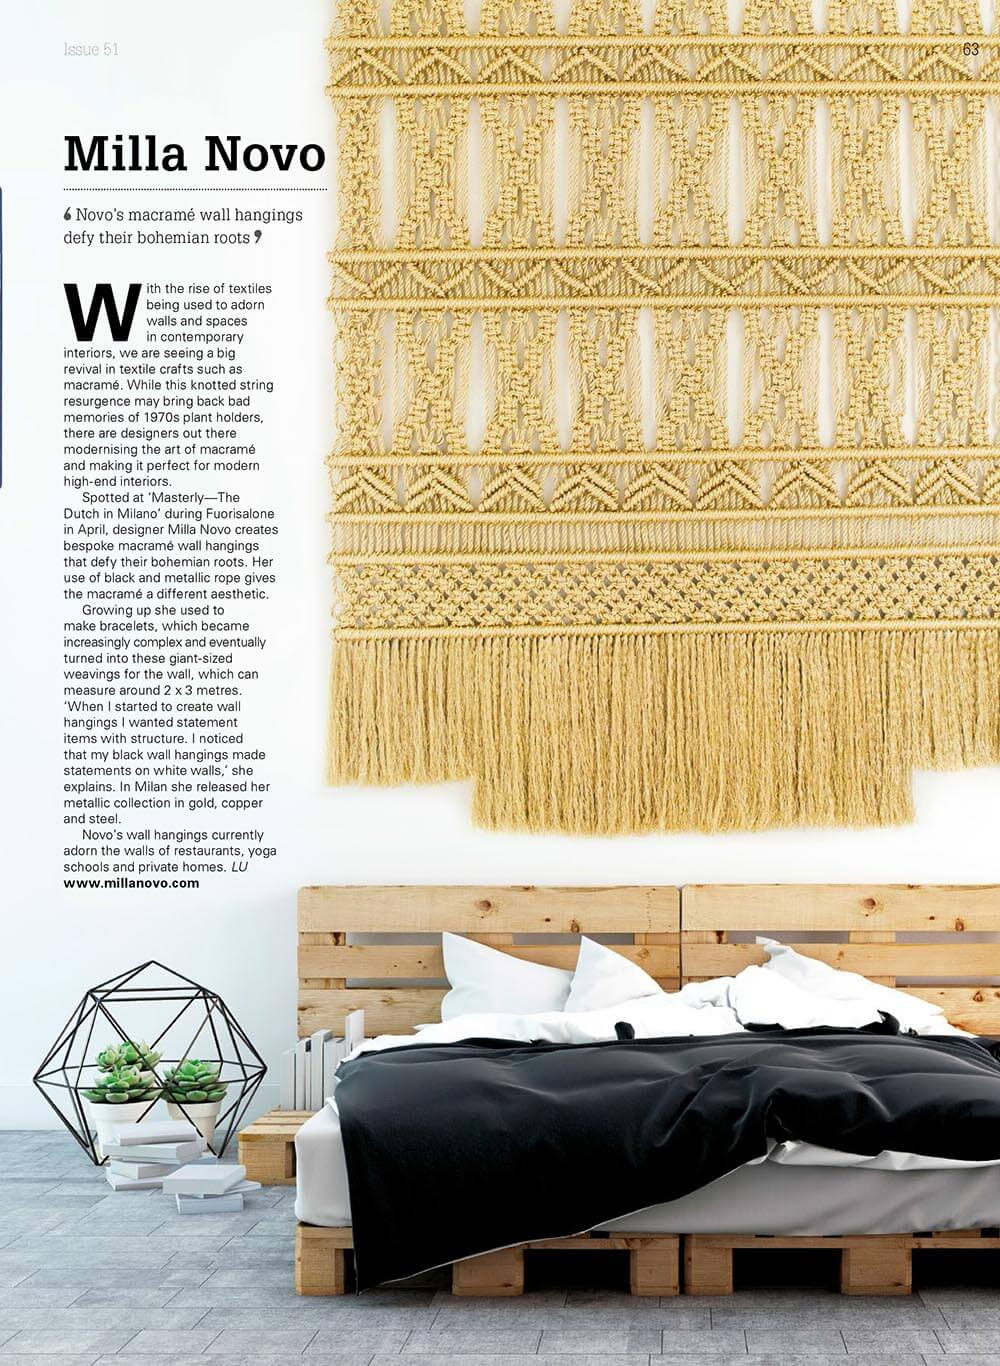 Goud Gold in article about interior Milla Novo Macrame Wallhanging